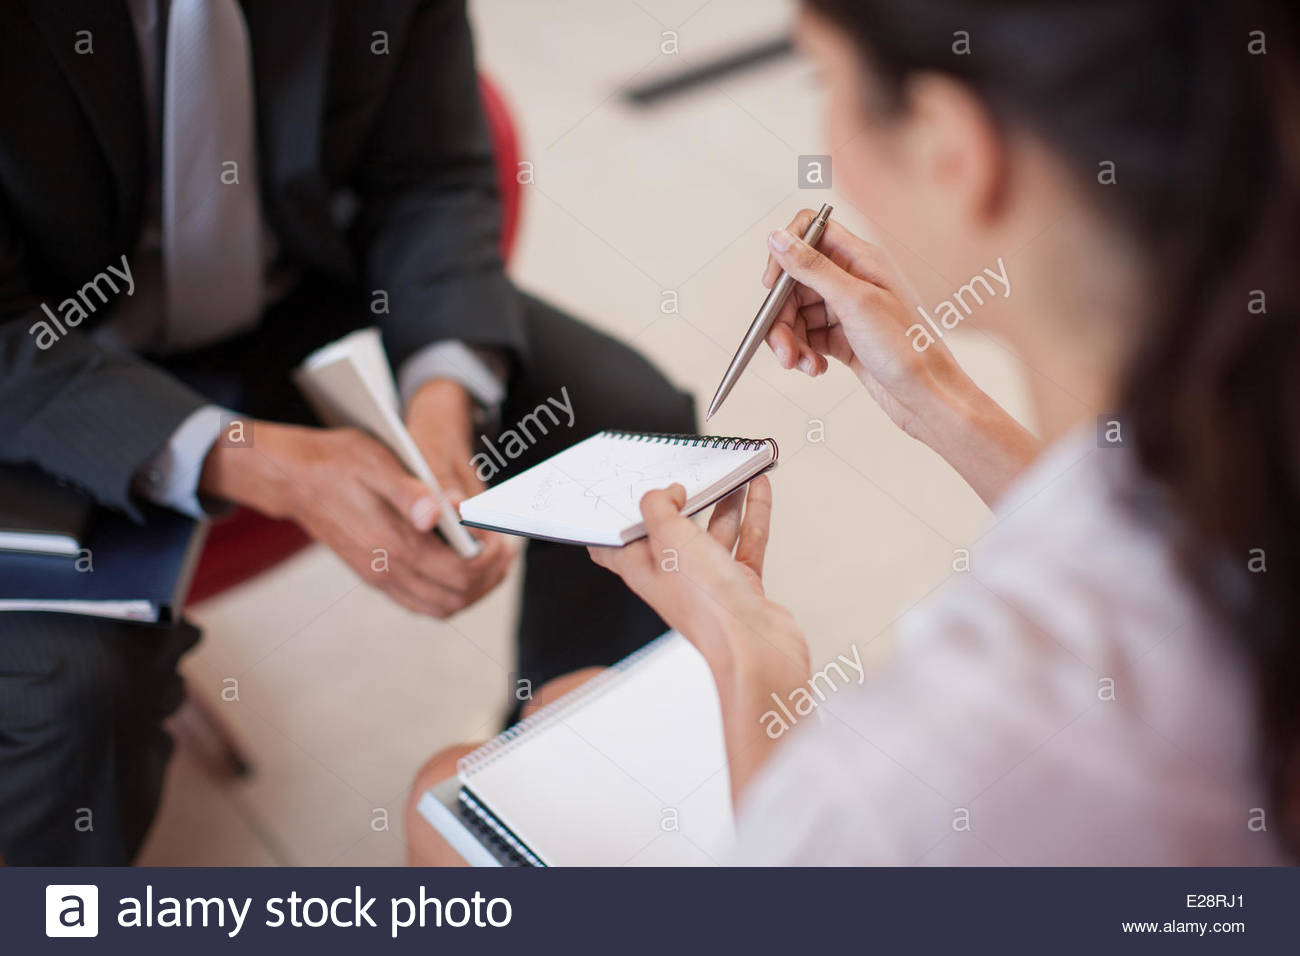 Business people looking at notebook in office - Stock Image